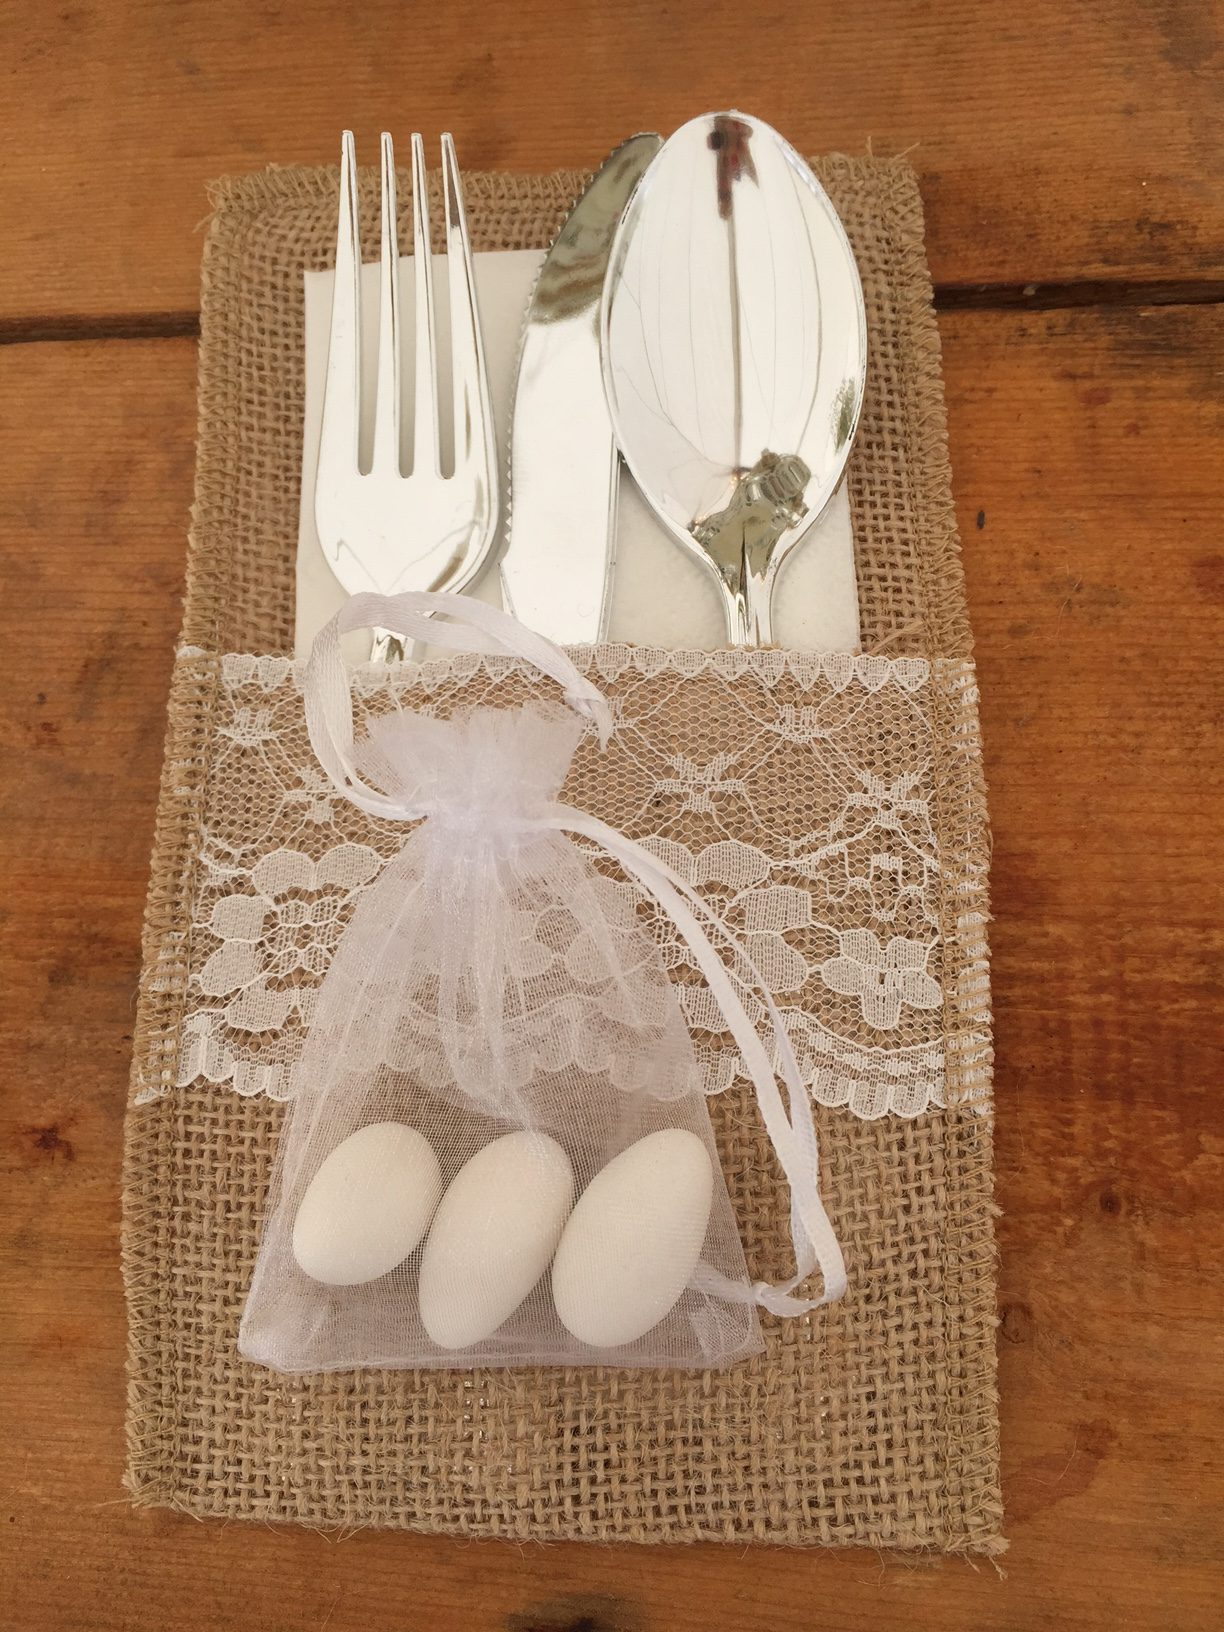 G&L Alcott Celebrant Wedding Cutlery